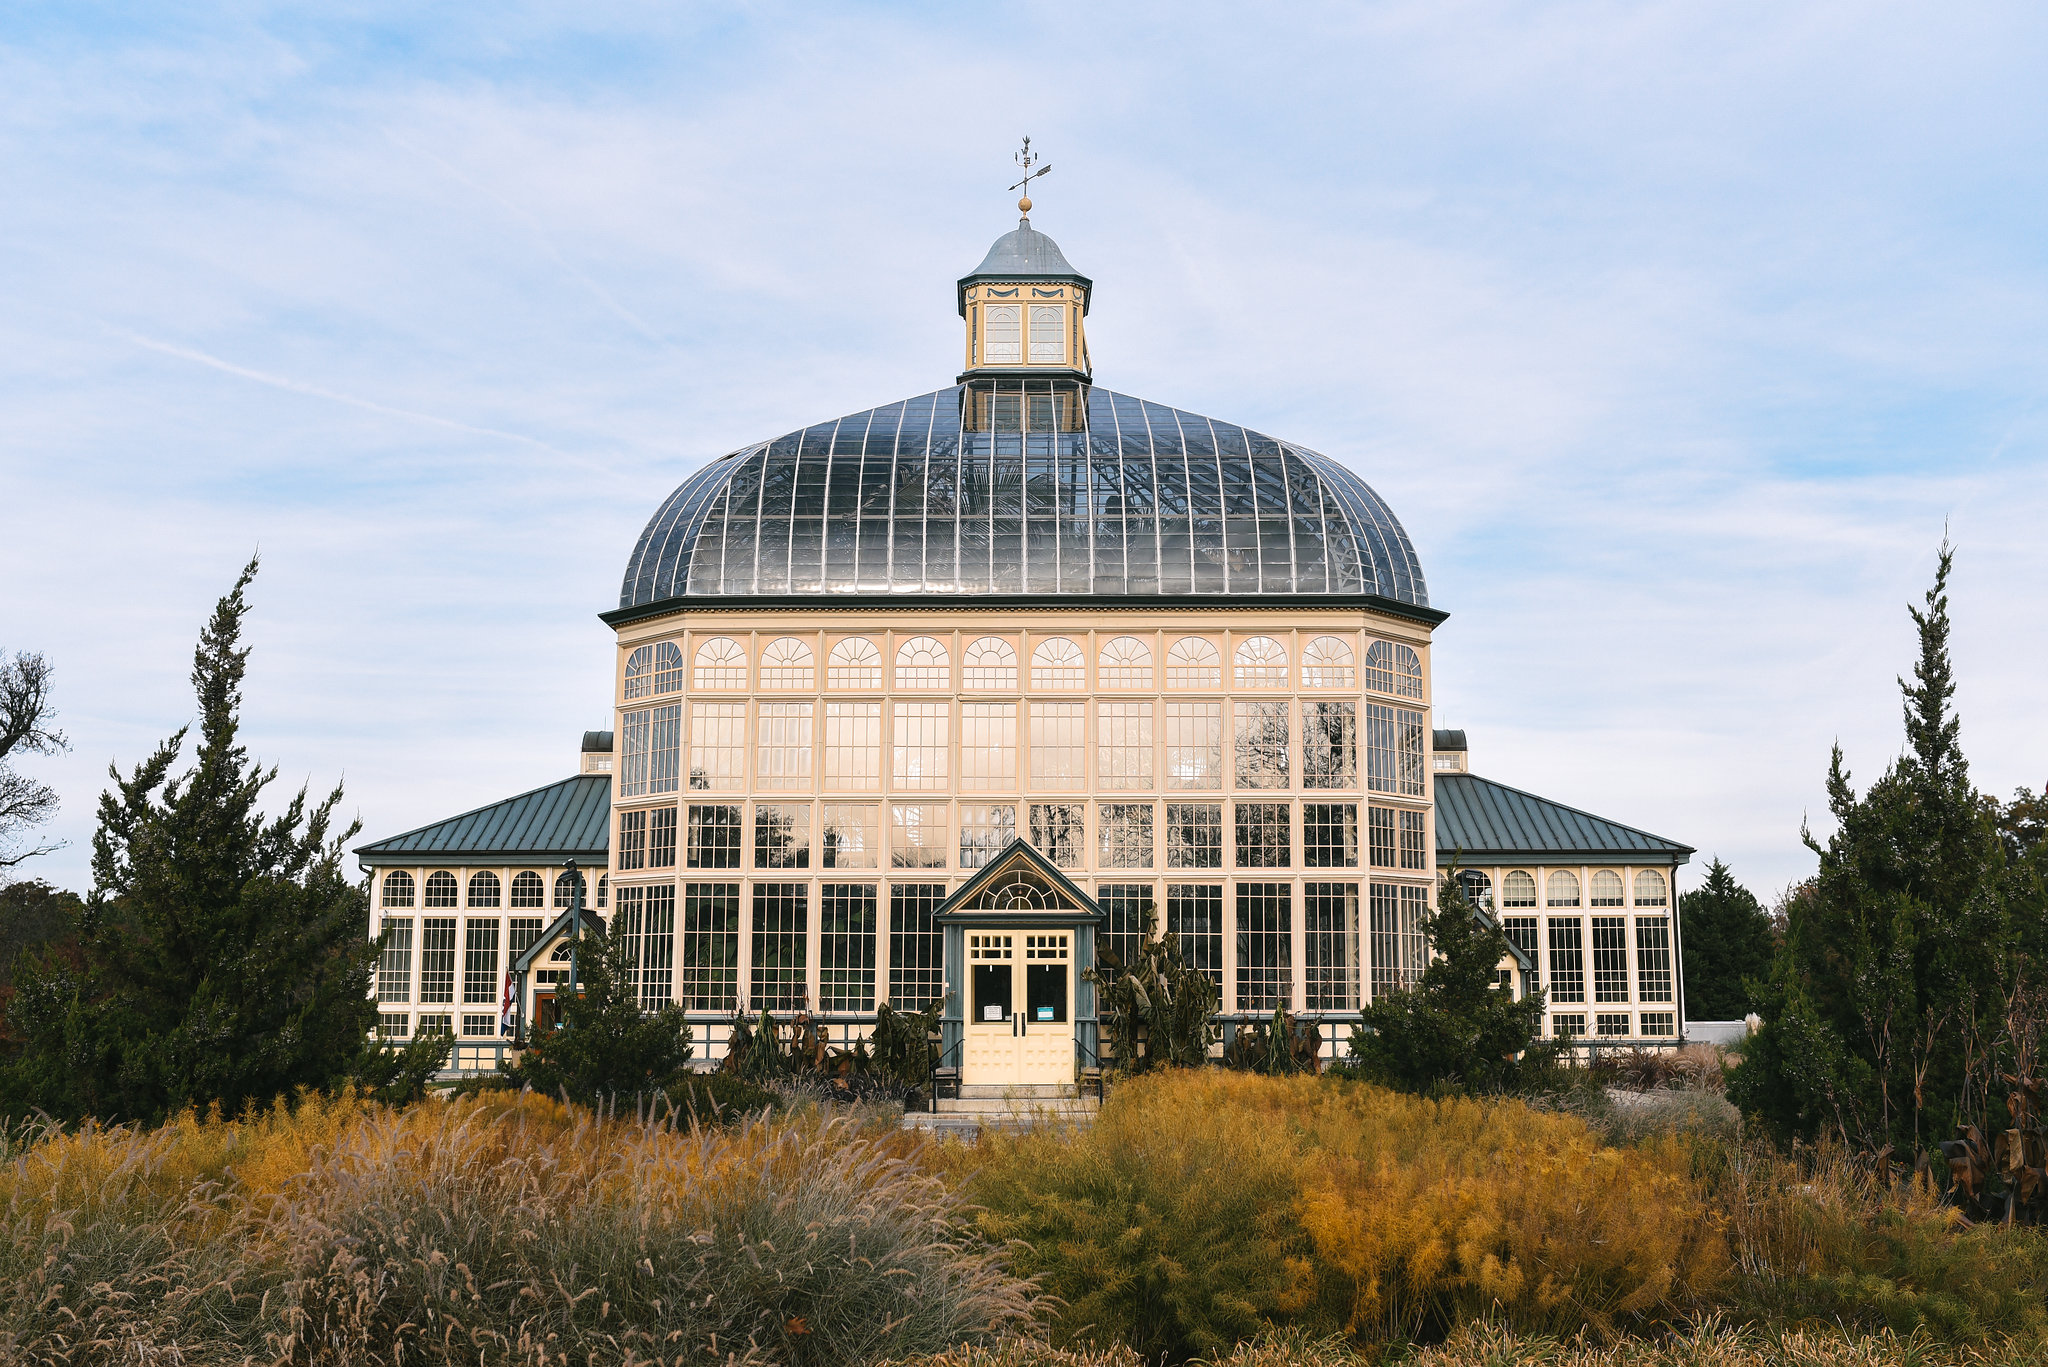 Rawlings Conservatory, Druid Hill Park, Intimate Wedding, Nature, Baltimore Wedding Photographer, Romantic, Classic, Wedding Venue